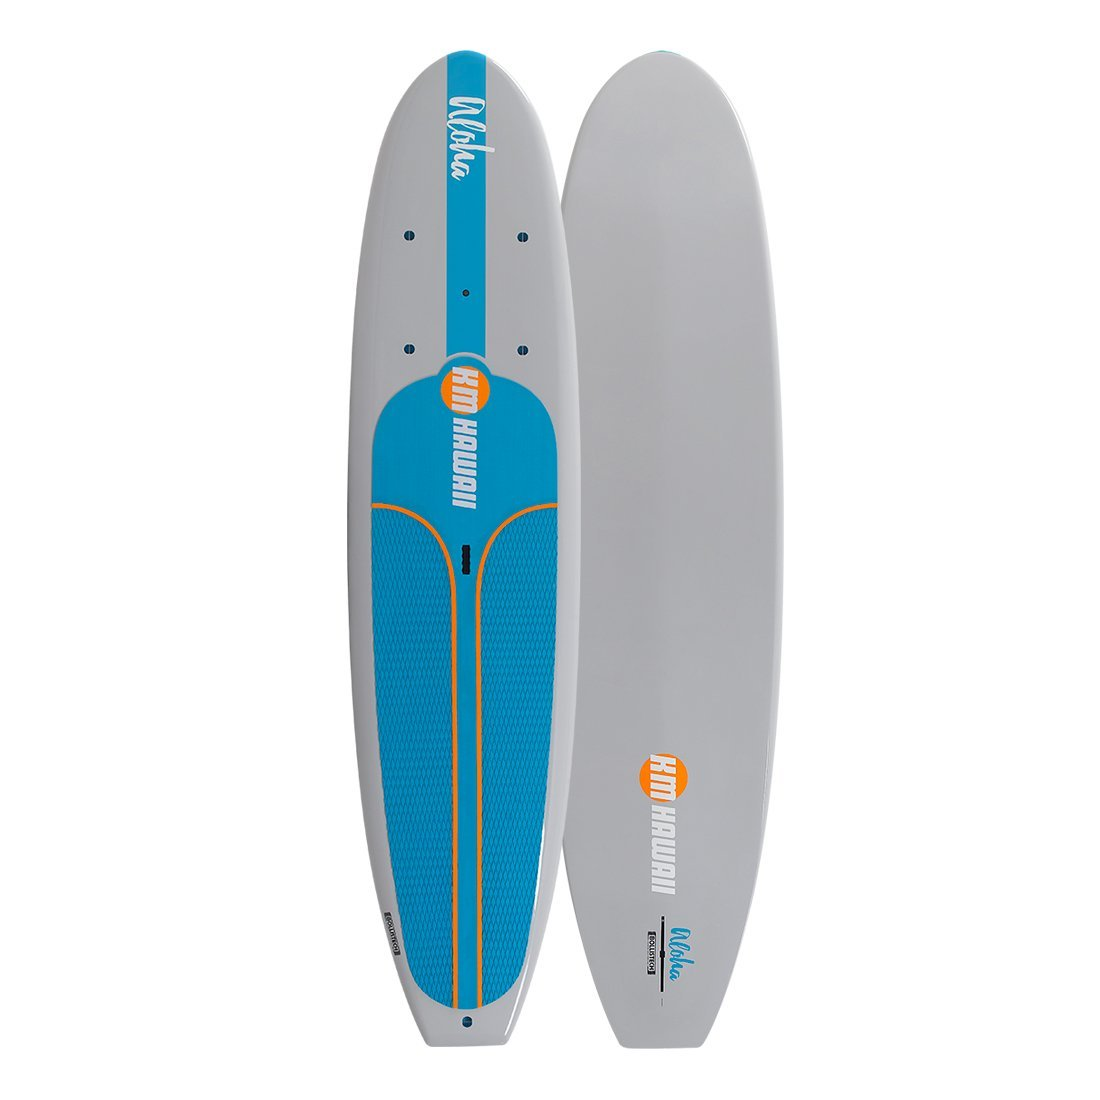 KM Hawaii Aloha All Arounder Standup Paddle Board Package Paddle Boards 4theoutdoors Canada SUP outdoors